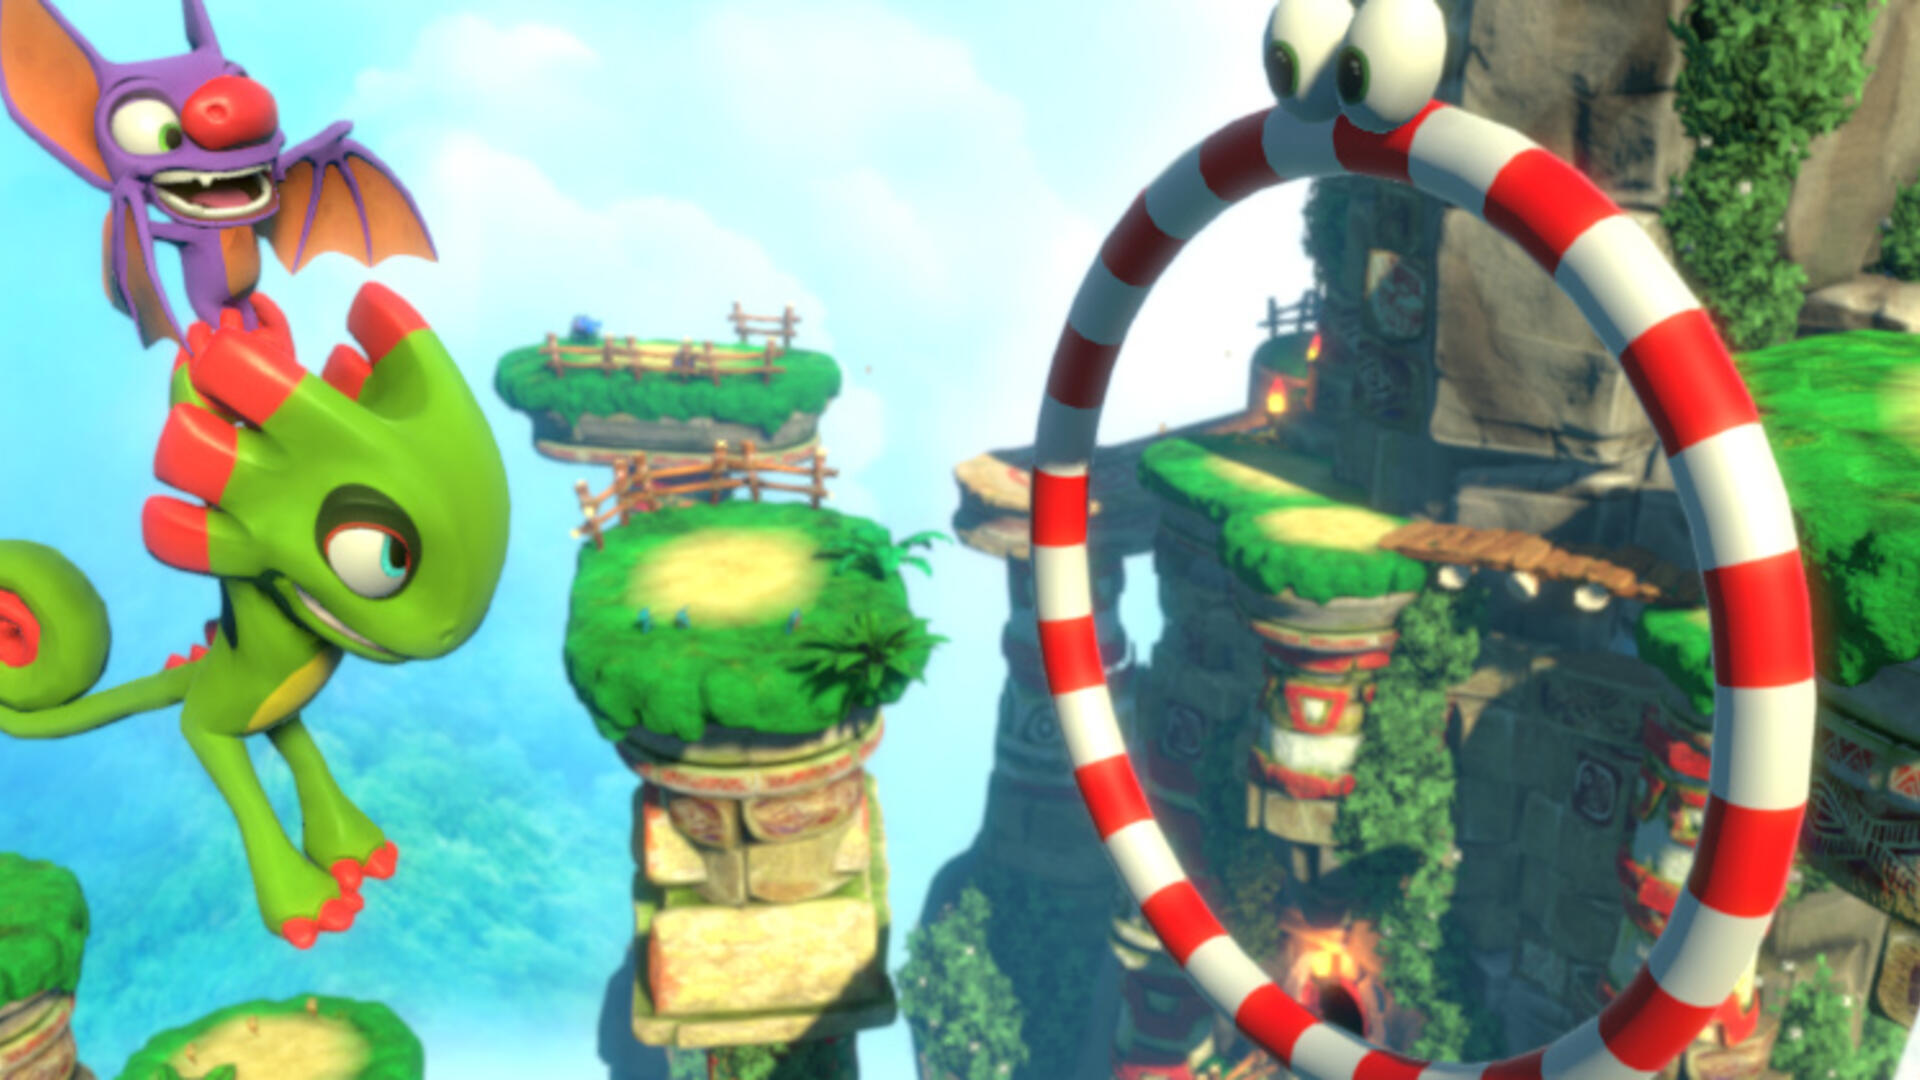 Yooka-Laylee Launching April 11, 2017, Wii U Version Moving to Switch